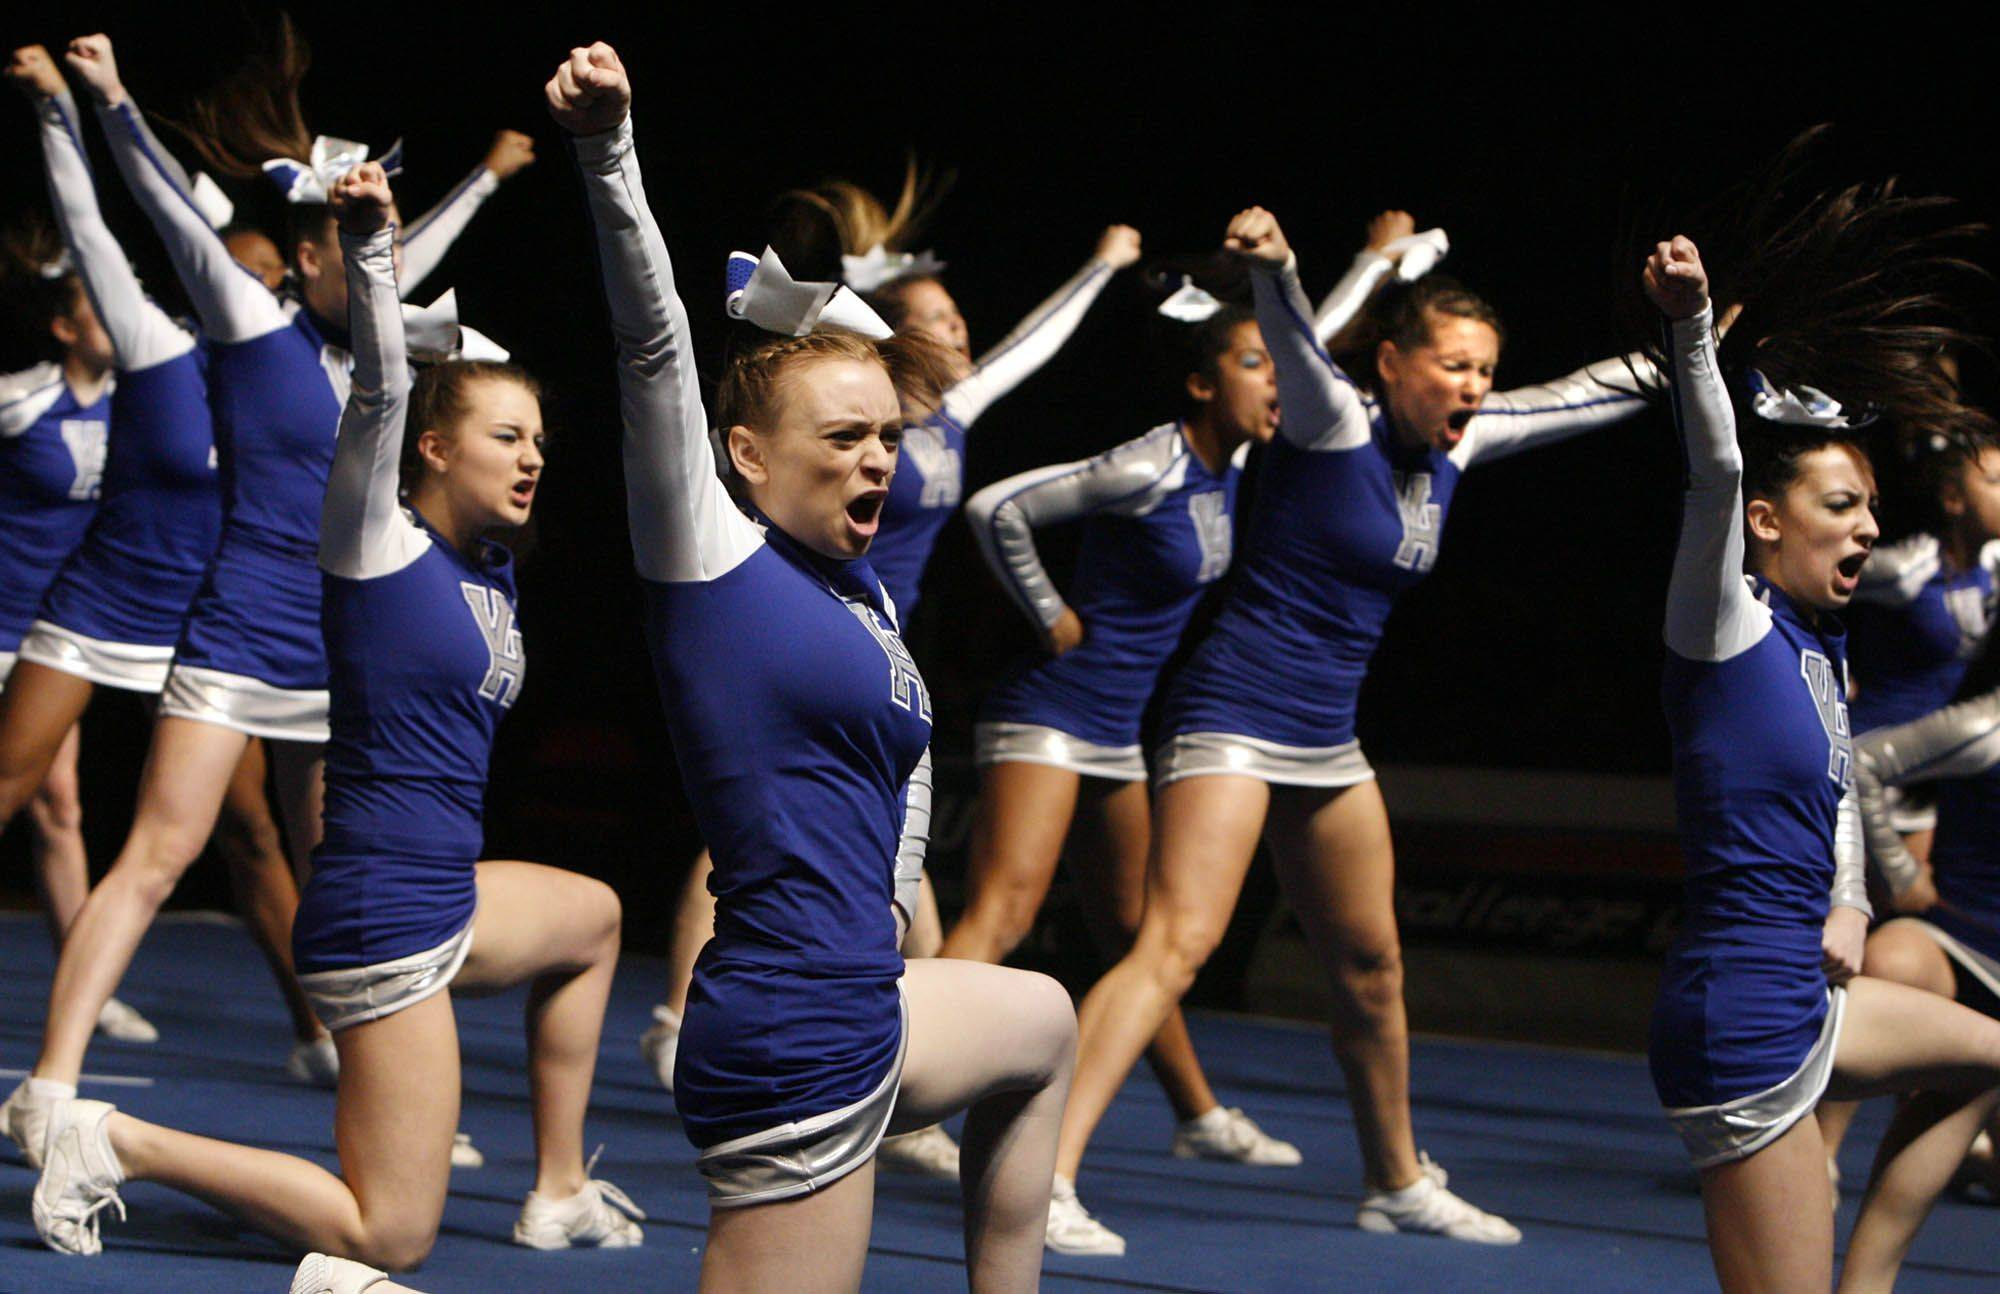 Vernon Hills compete in the mediuml team category at IHSA cheerleading state finals at U.S. Cellular Coliseum in Bloomington on Saturday, February 4th.